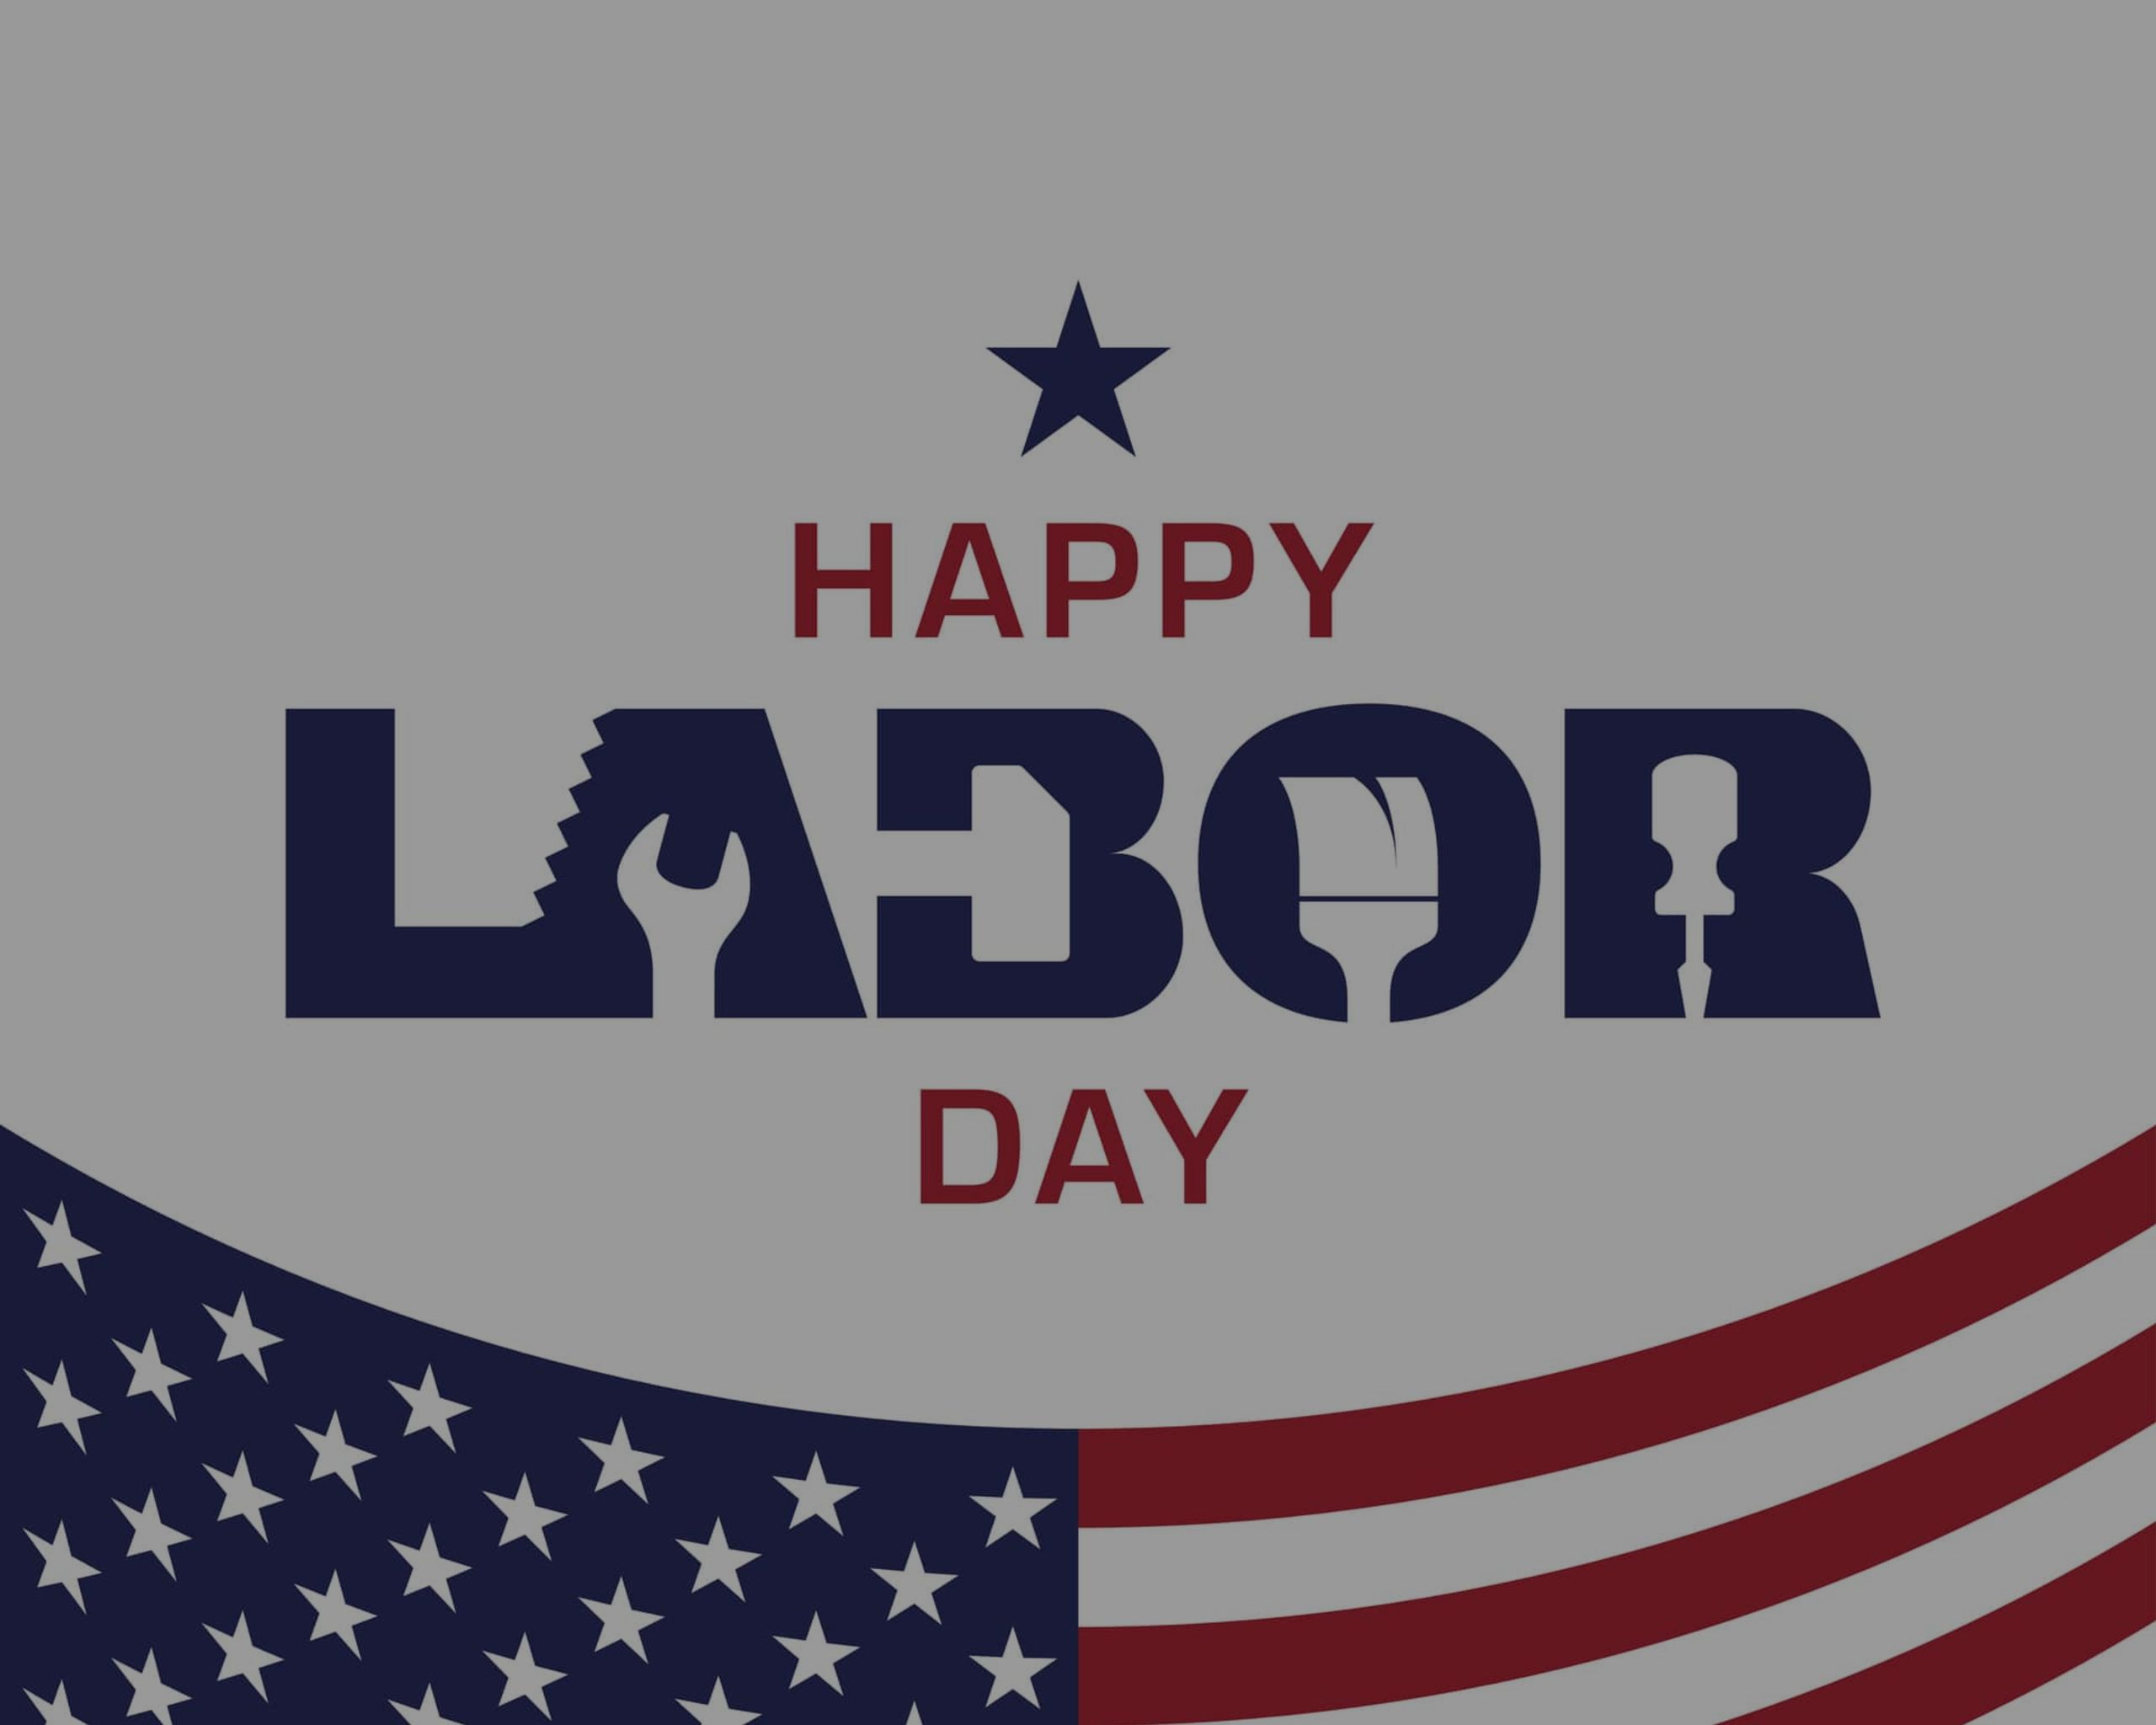 Happy Labor Day 2019 From The Tammy Mrotek Team!